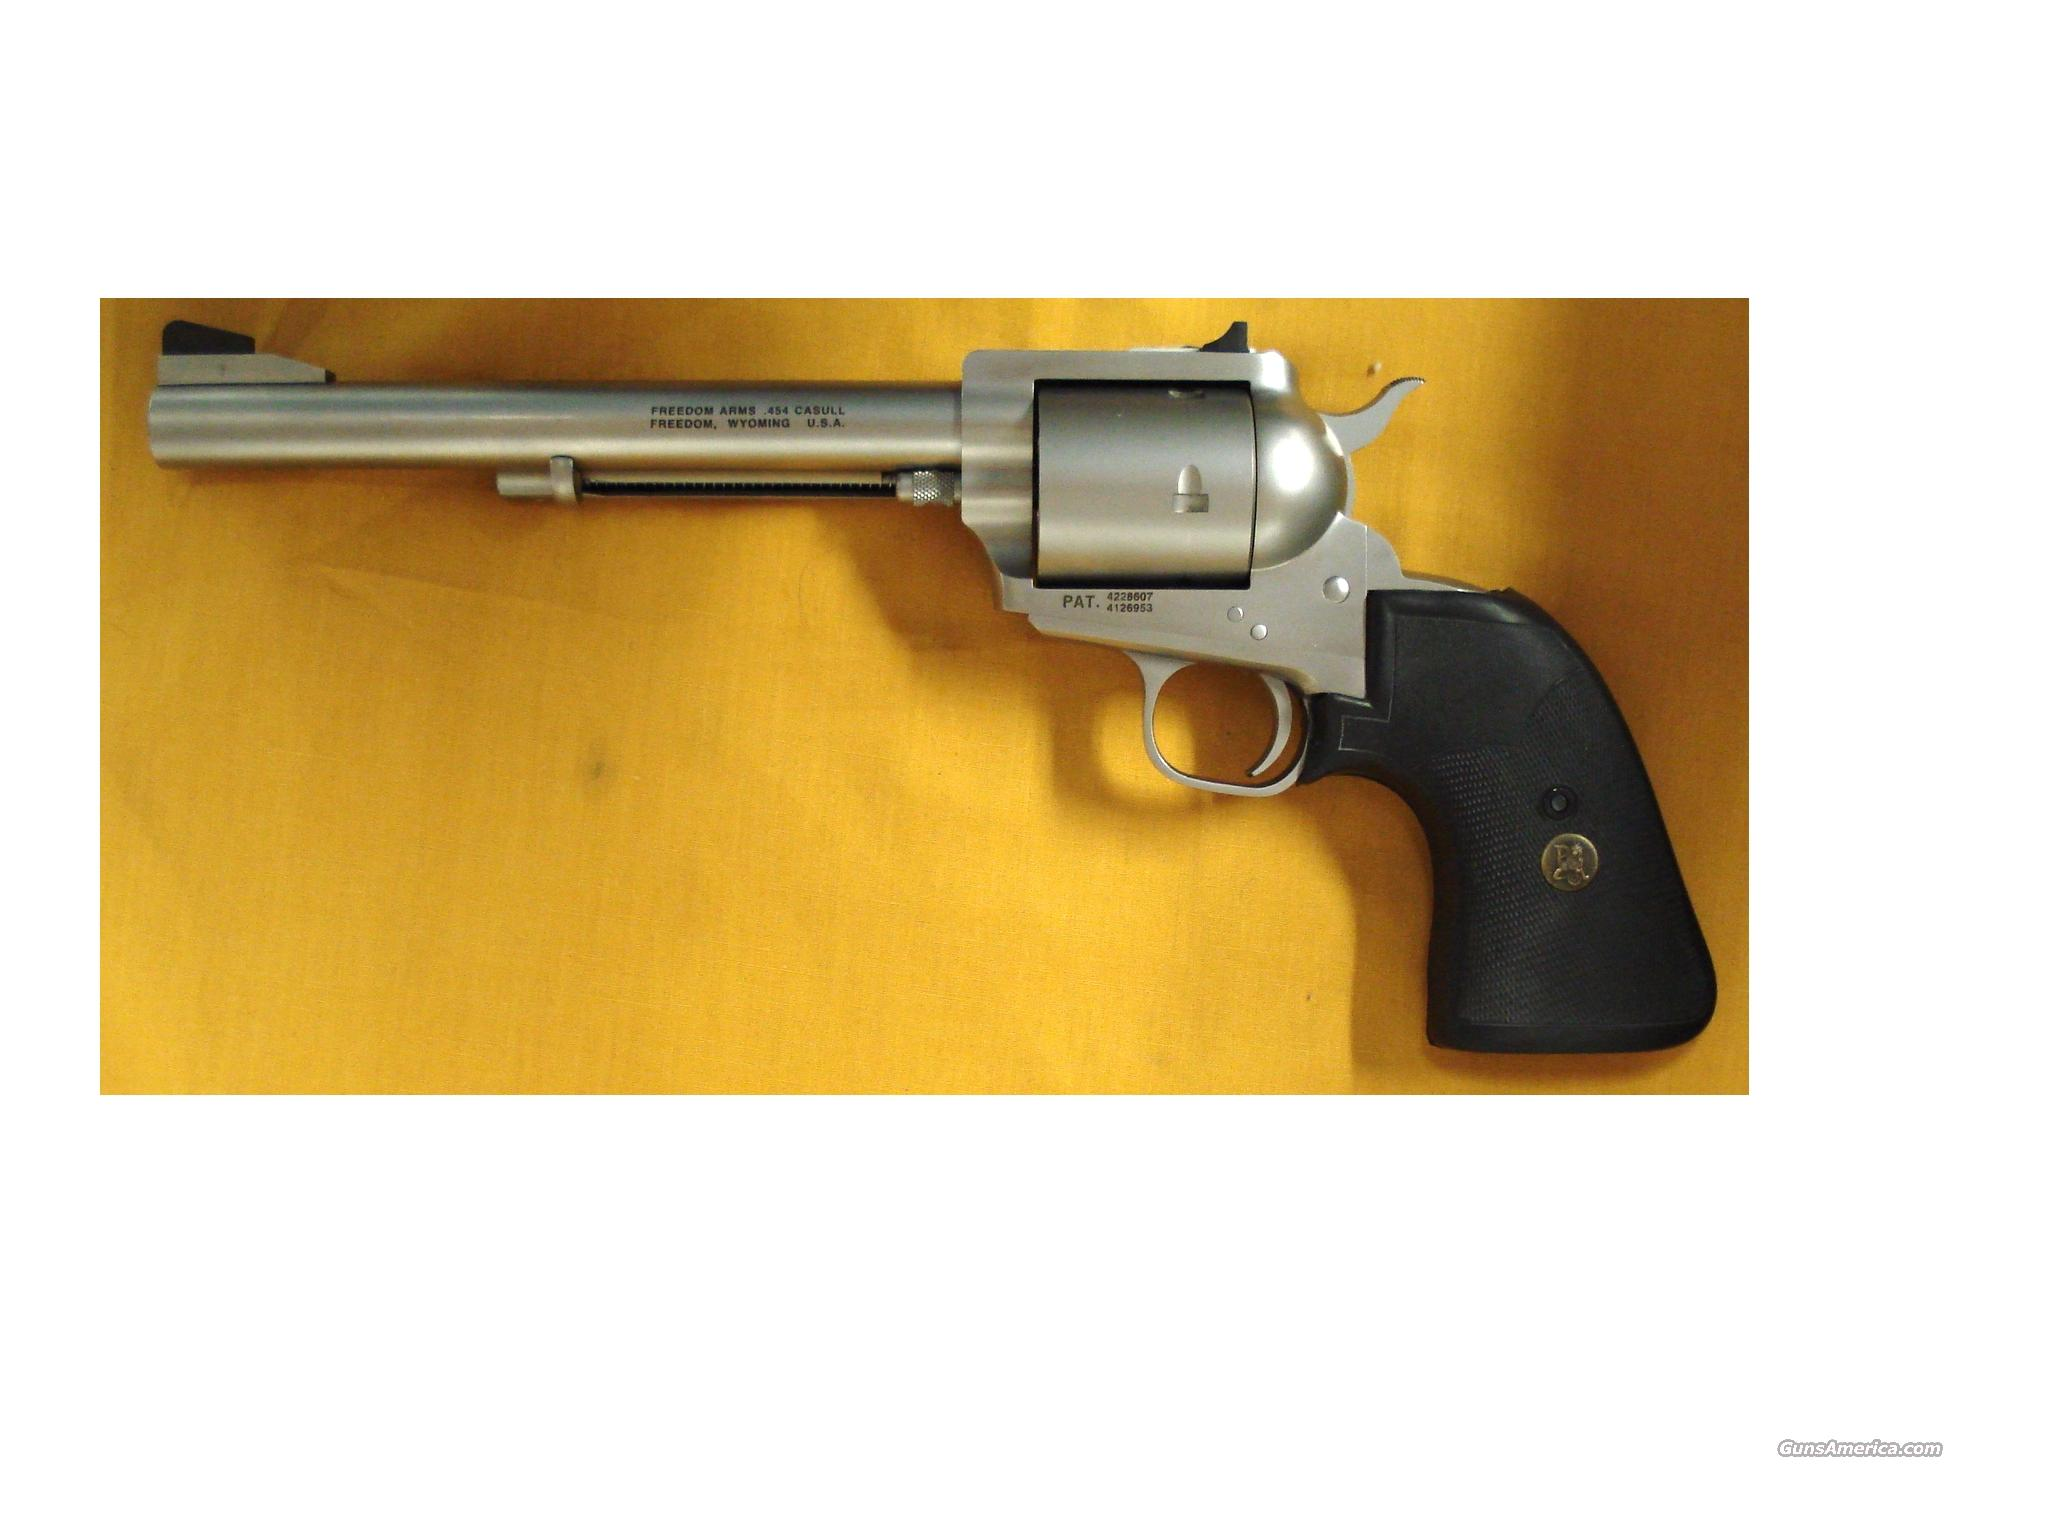 "FREEDOM ARMS 454 CASULL 7 1/2"" BBL   Guns > Pistols > Freedom Arms Pistols"